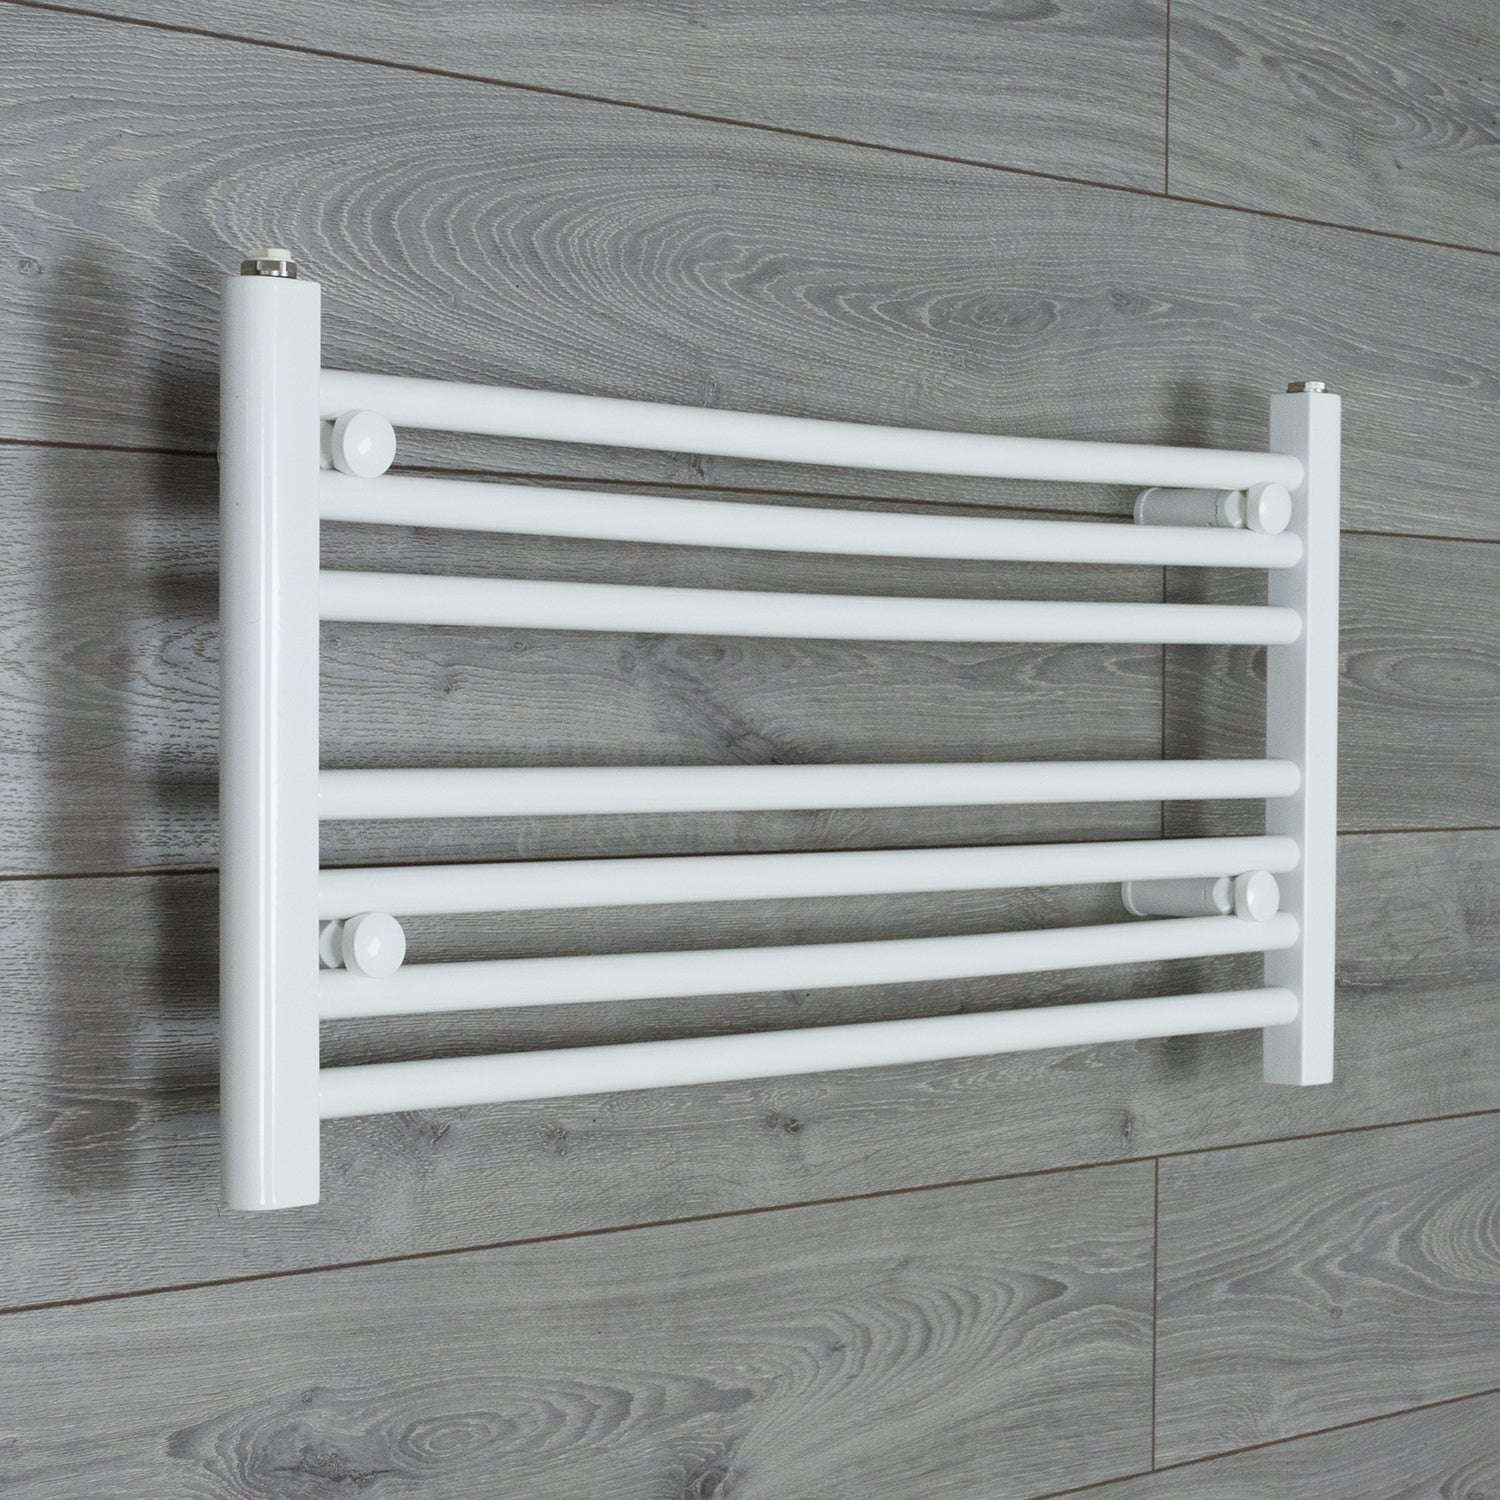 900mm Wide 400mm High White Towel Rail Radiator